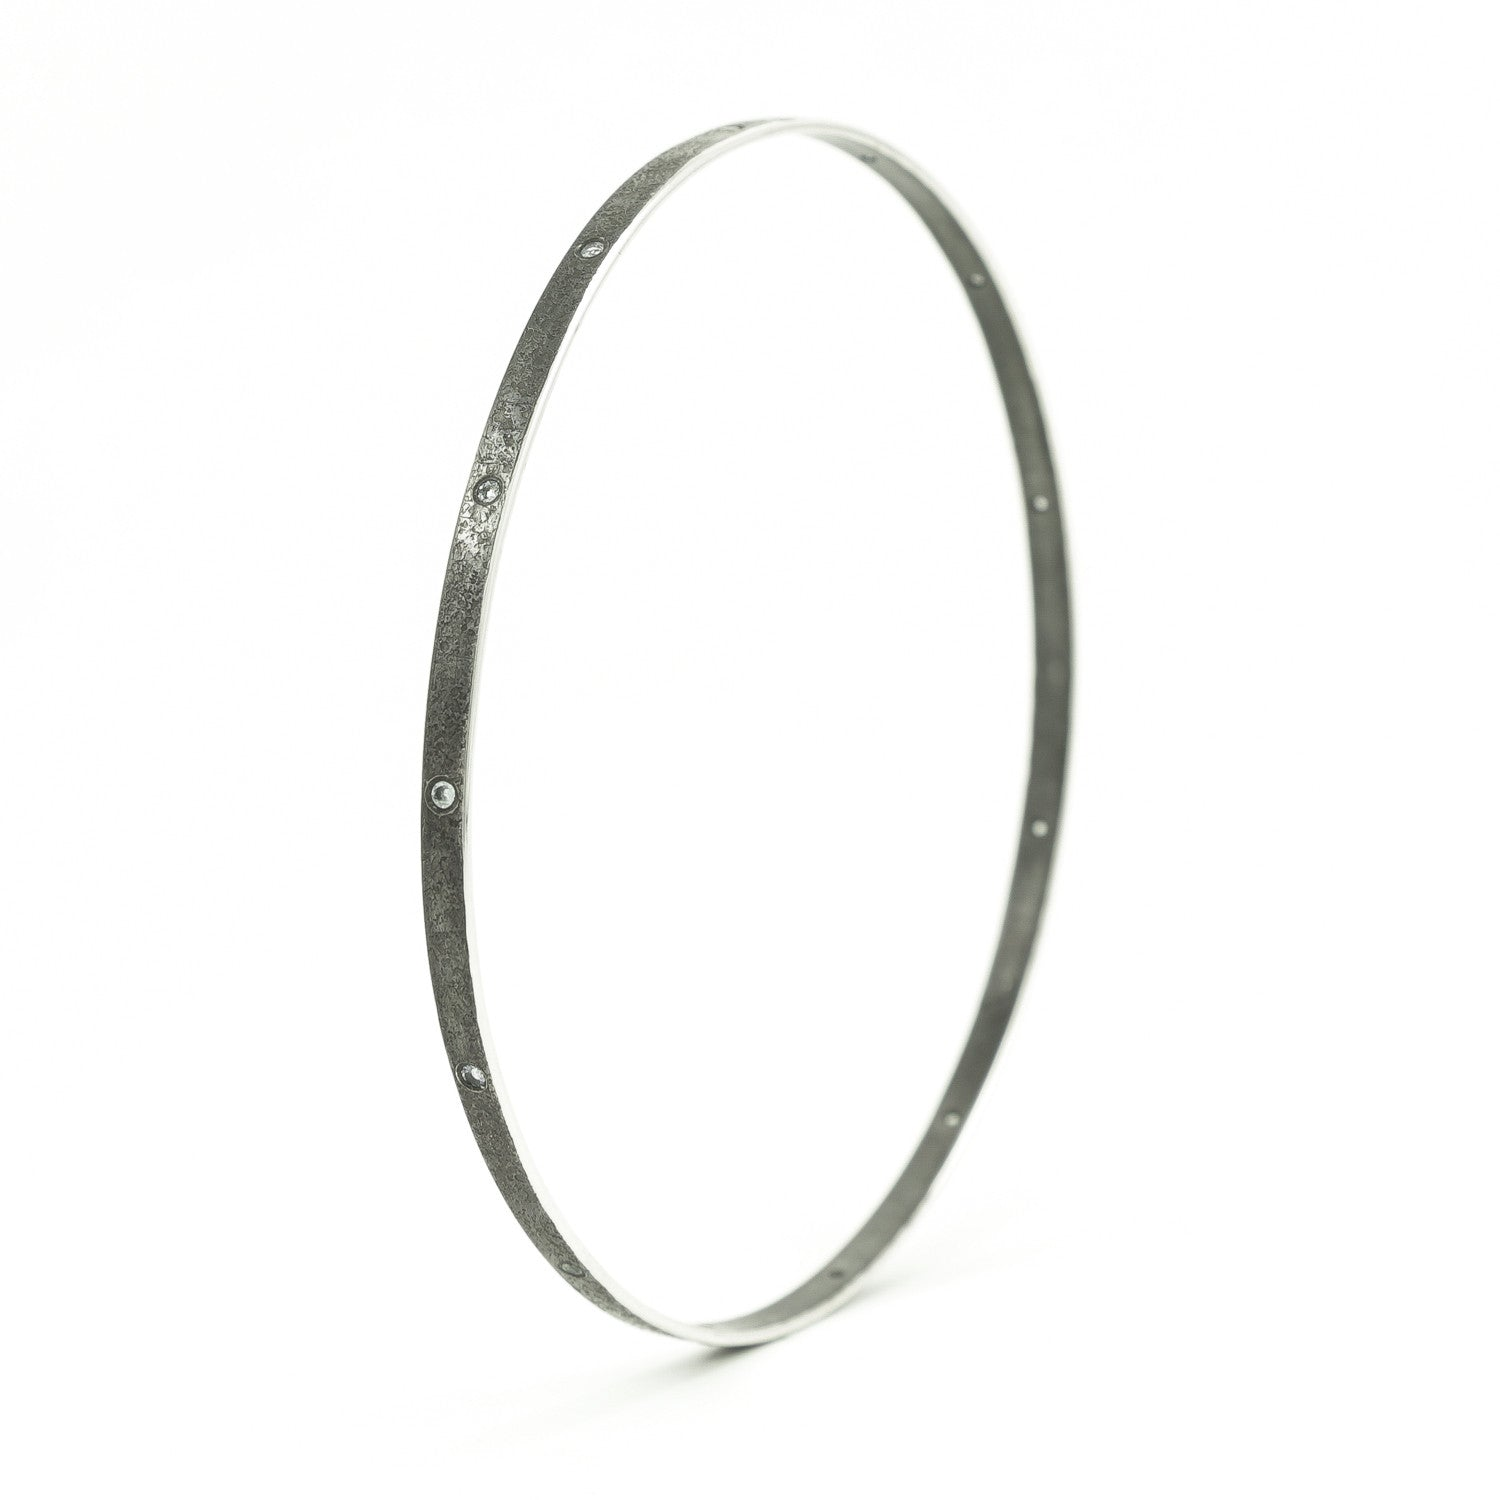 bangles metallic thin lyst hinged product in bracelet bracelets kors michael silver oval jewelry bangle gallery